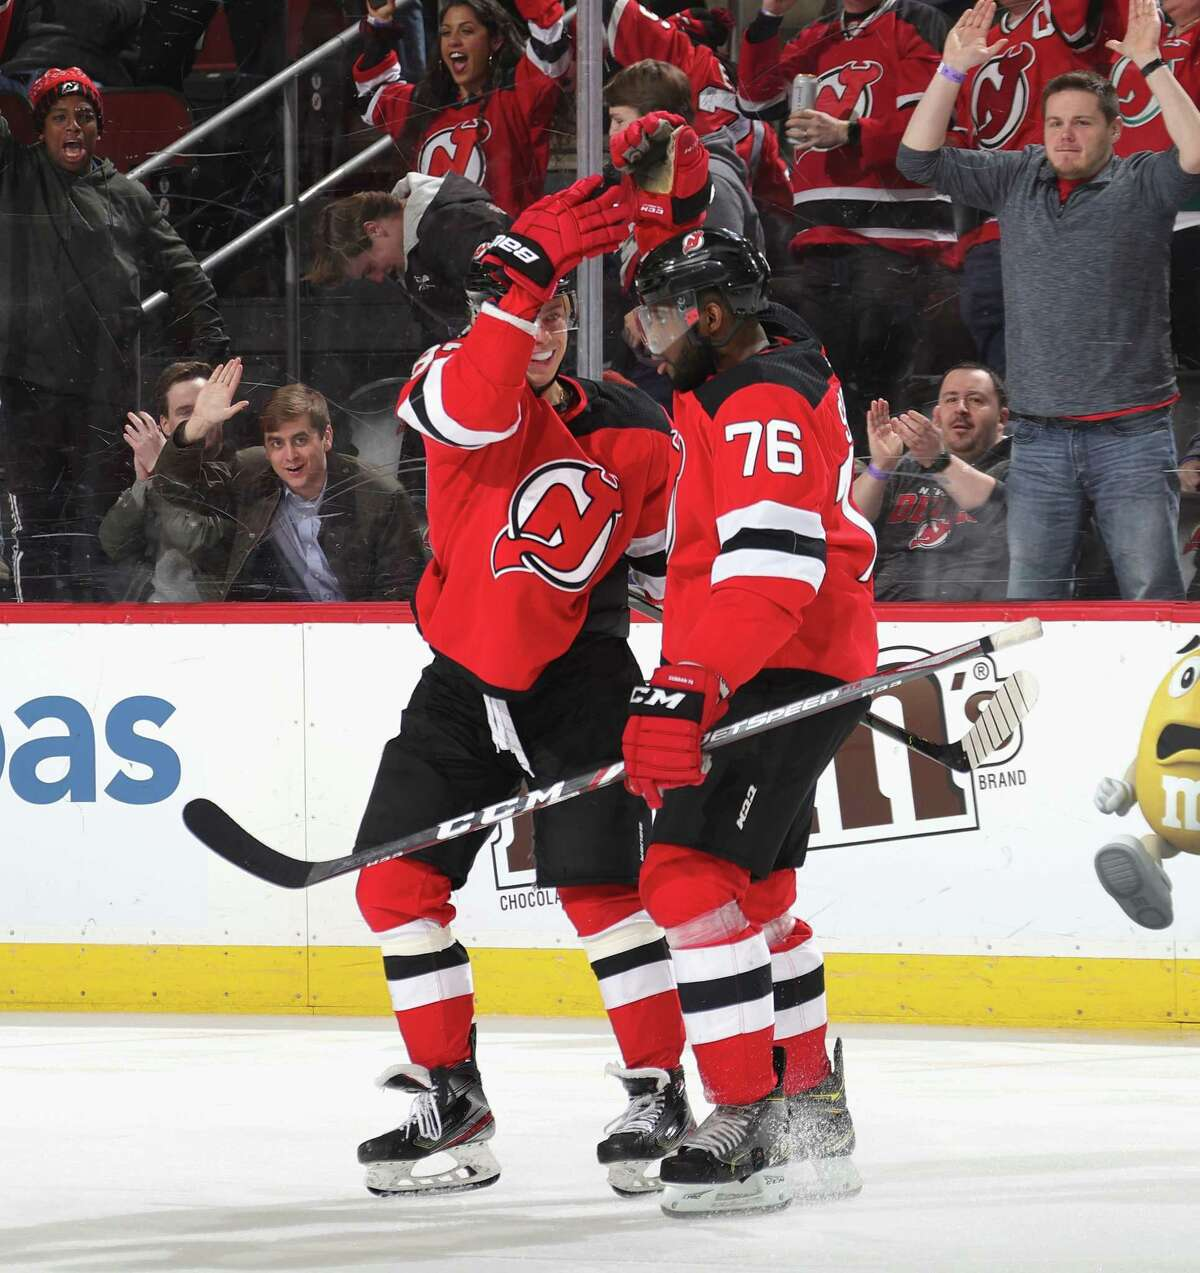 NEWARK, NEW JERSEY - FEBRUARY 20: P.K. Subban #76 of the New Jersey Devils (R) scores the game winning goal on the power-play at 2:56 of the third period against the San Jose Sharks at the Prudential Center on February 20, 2020 in Newark, New Jersey. The Devils defeated the Sharks 2-1. (Photo by Bruce Bennett/Getty Images)